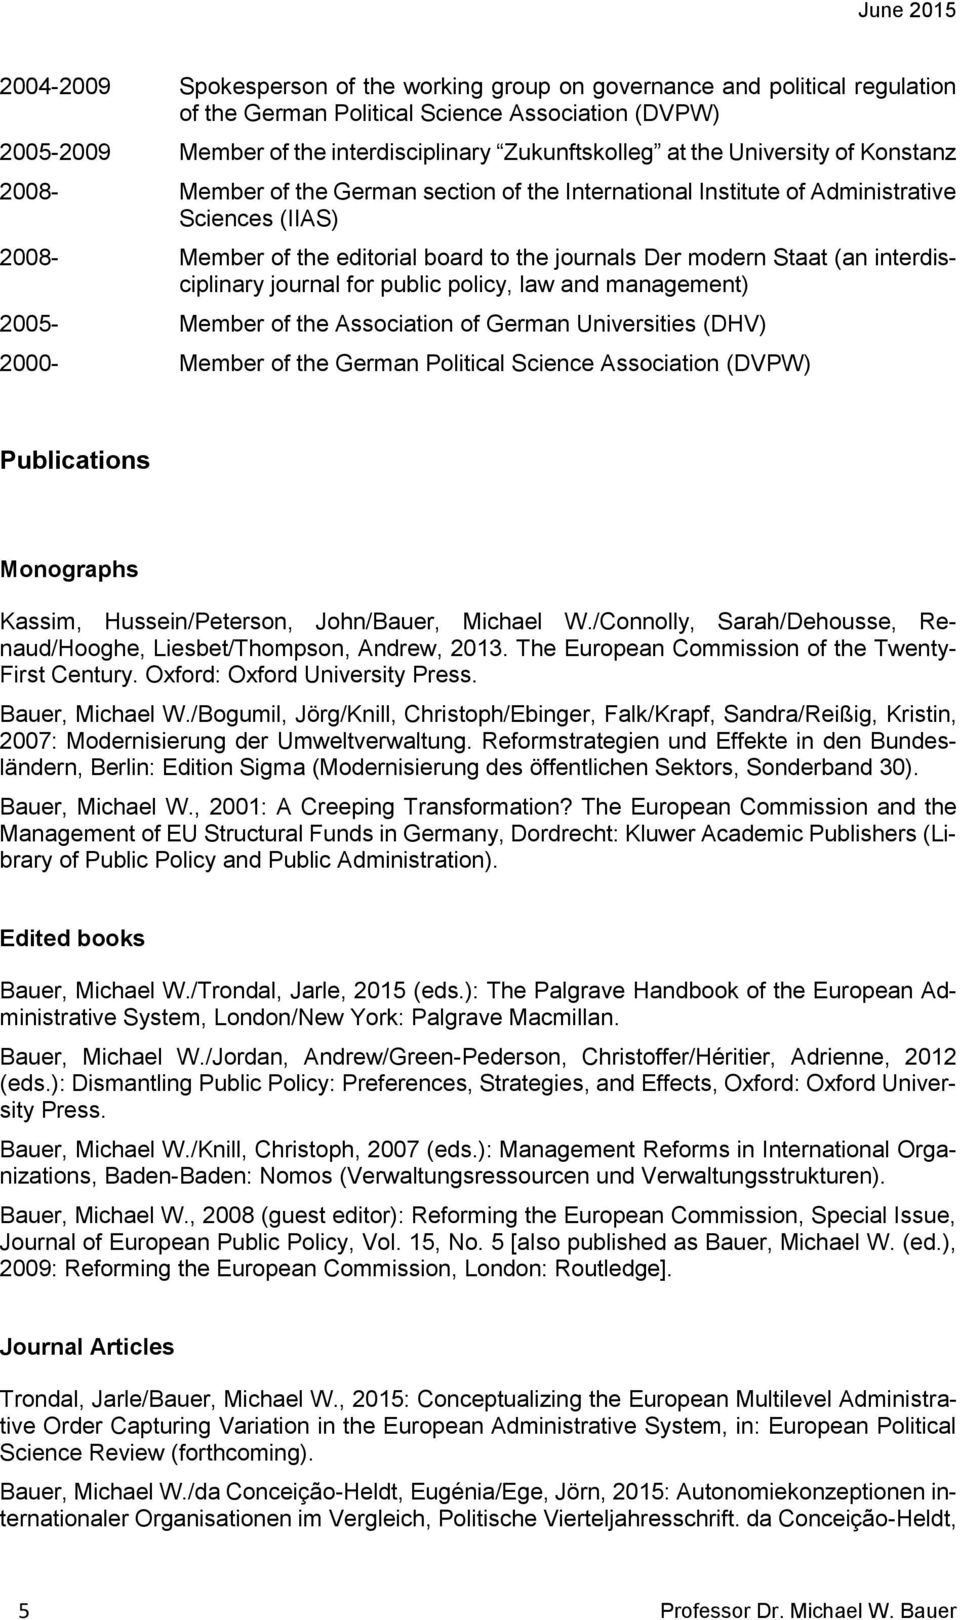 interdisciplinary journal for public policy, law and management) 2005- Member of the Association of German Universities (DHV) 2000- Member of the German Political Science Association (DVPW)